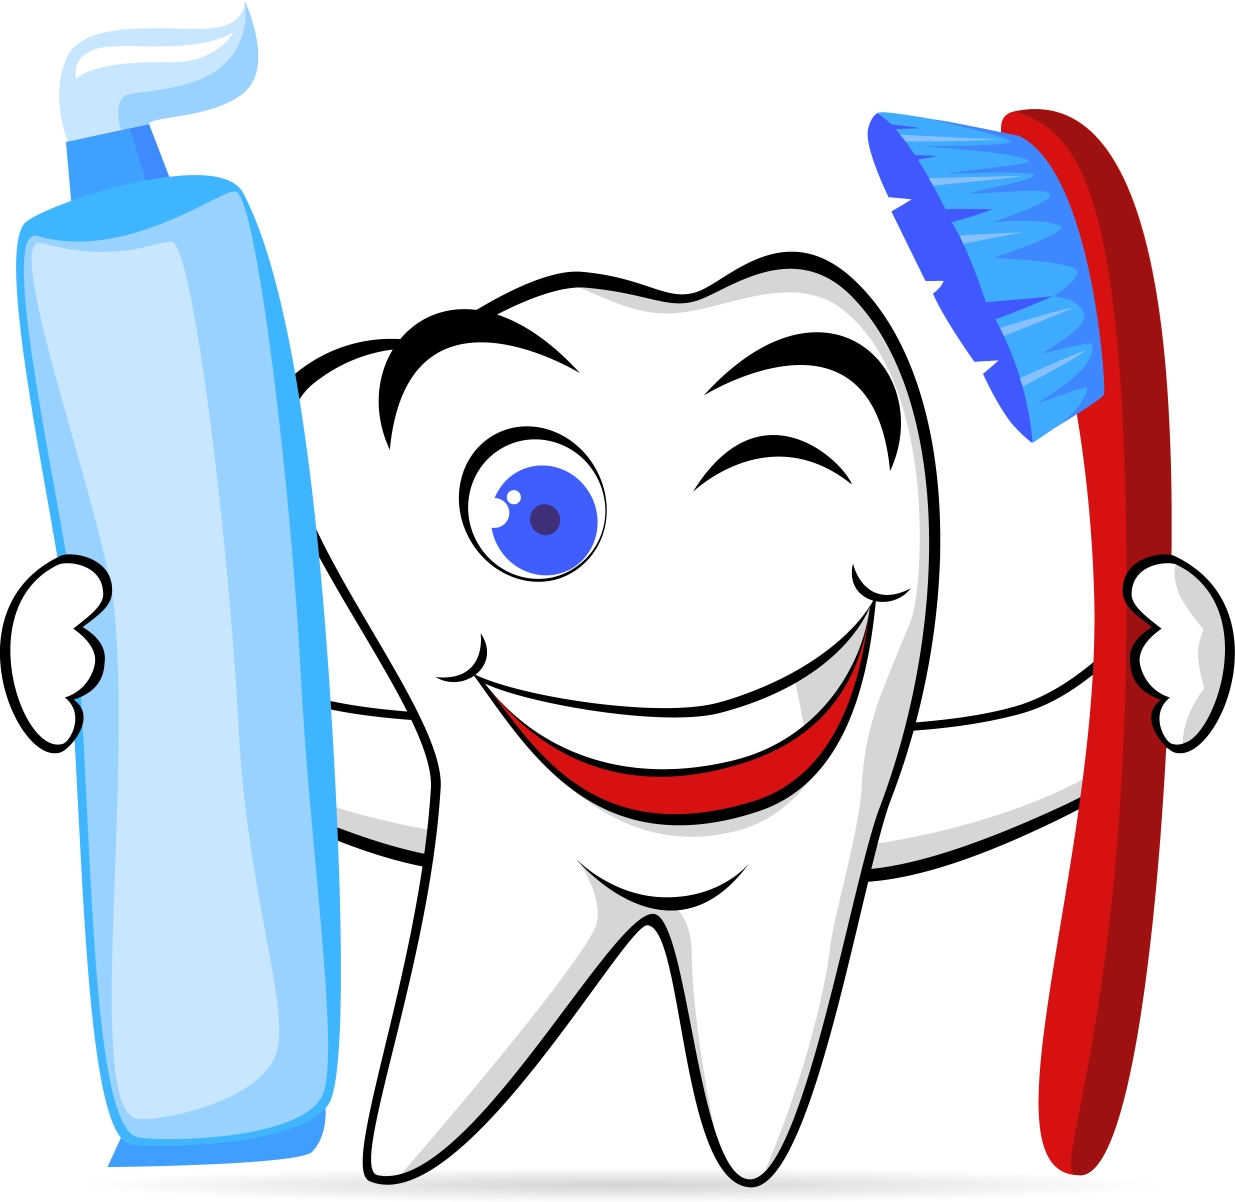 Brush clipart tooth paste. Toothbrush cilpart amusing for